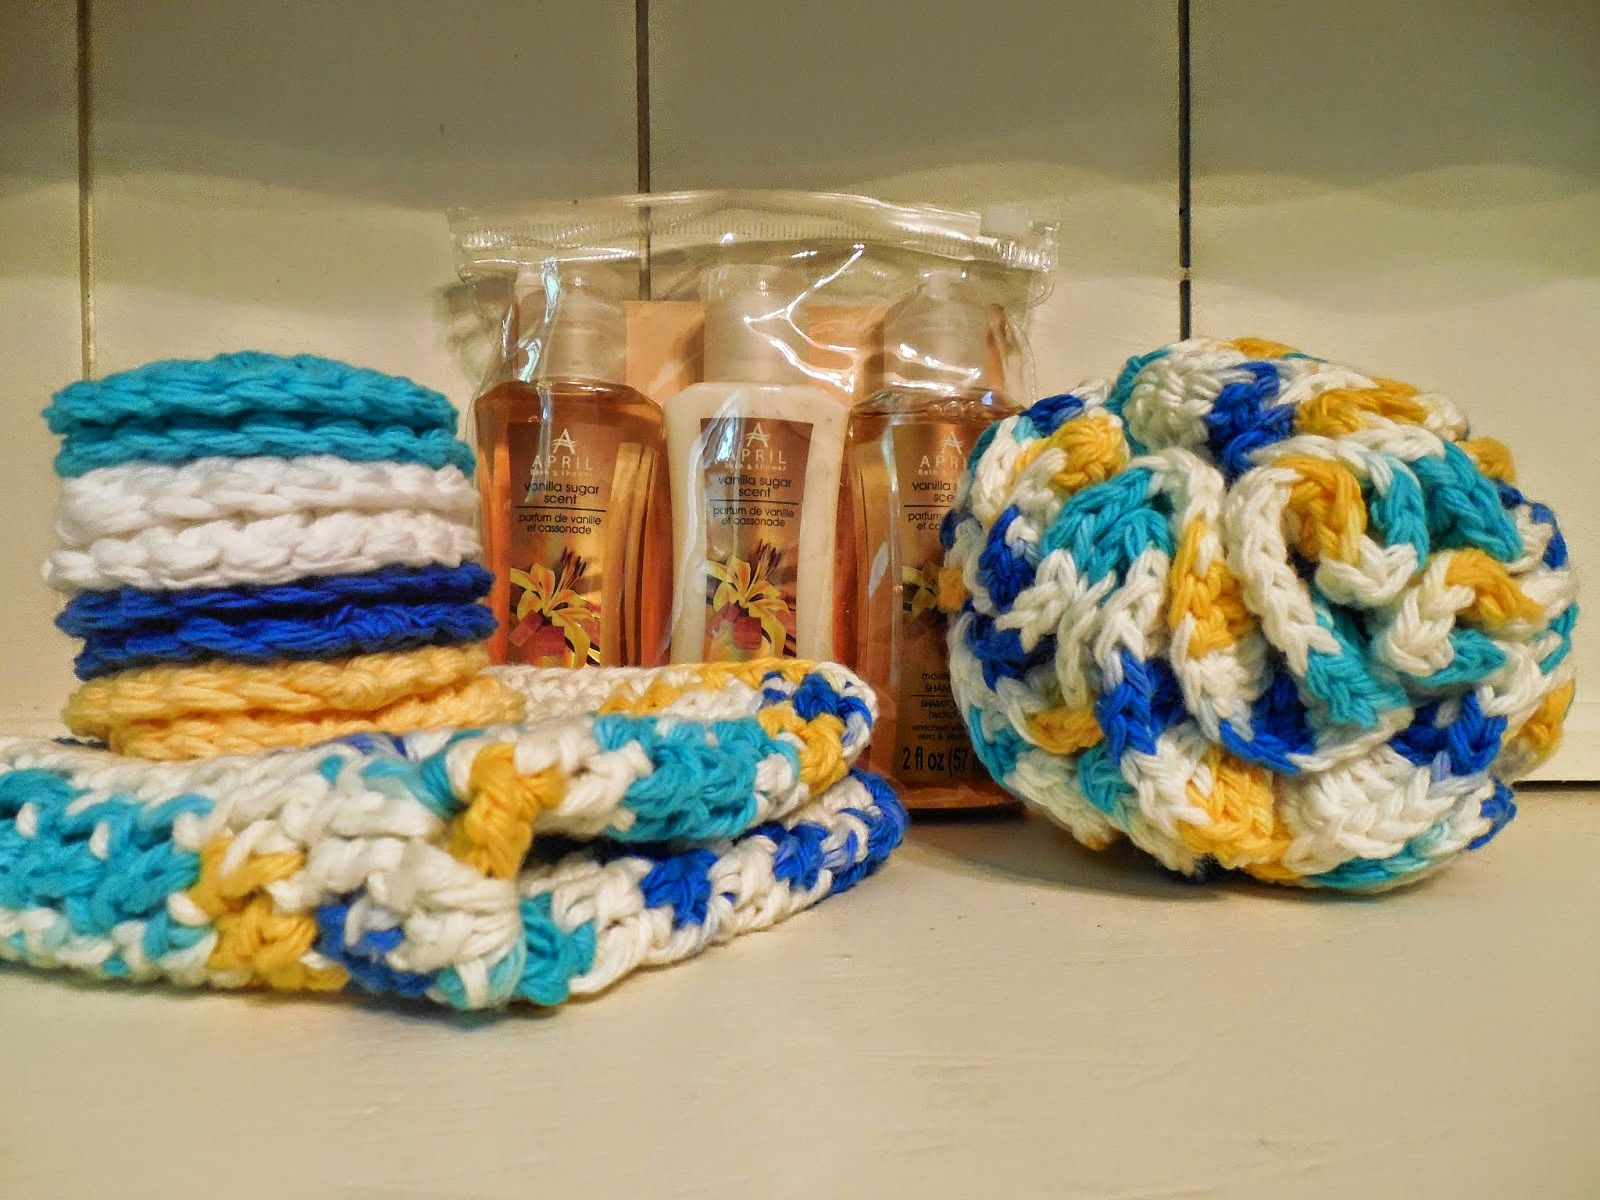 http://reallyreallyrealhousewives.blogspot.com/2014/07/a-hand-crocheted-spa-bath-set-give-away.html